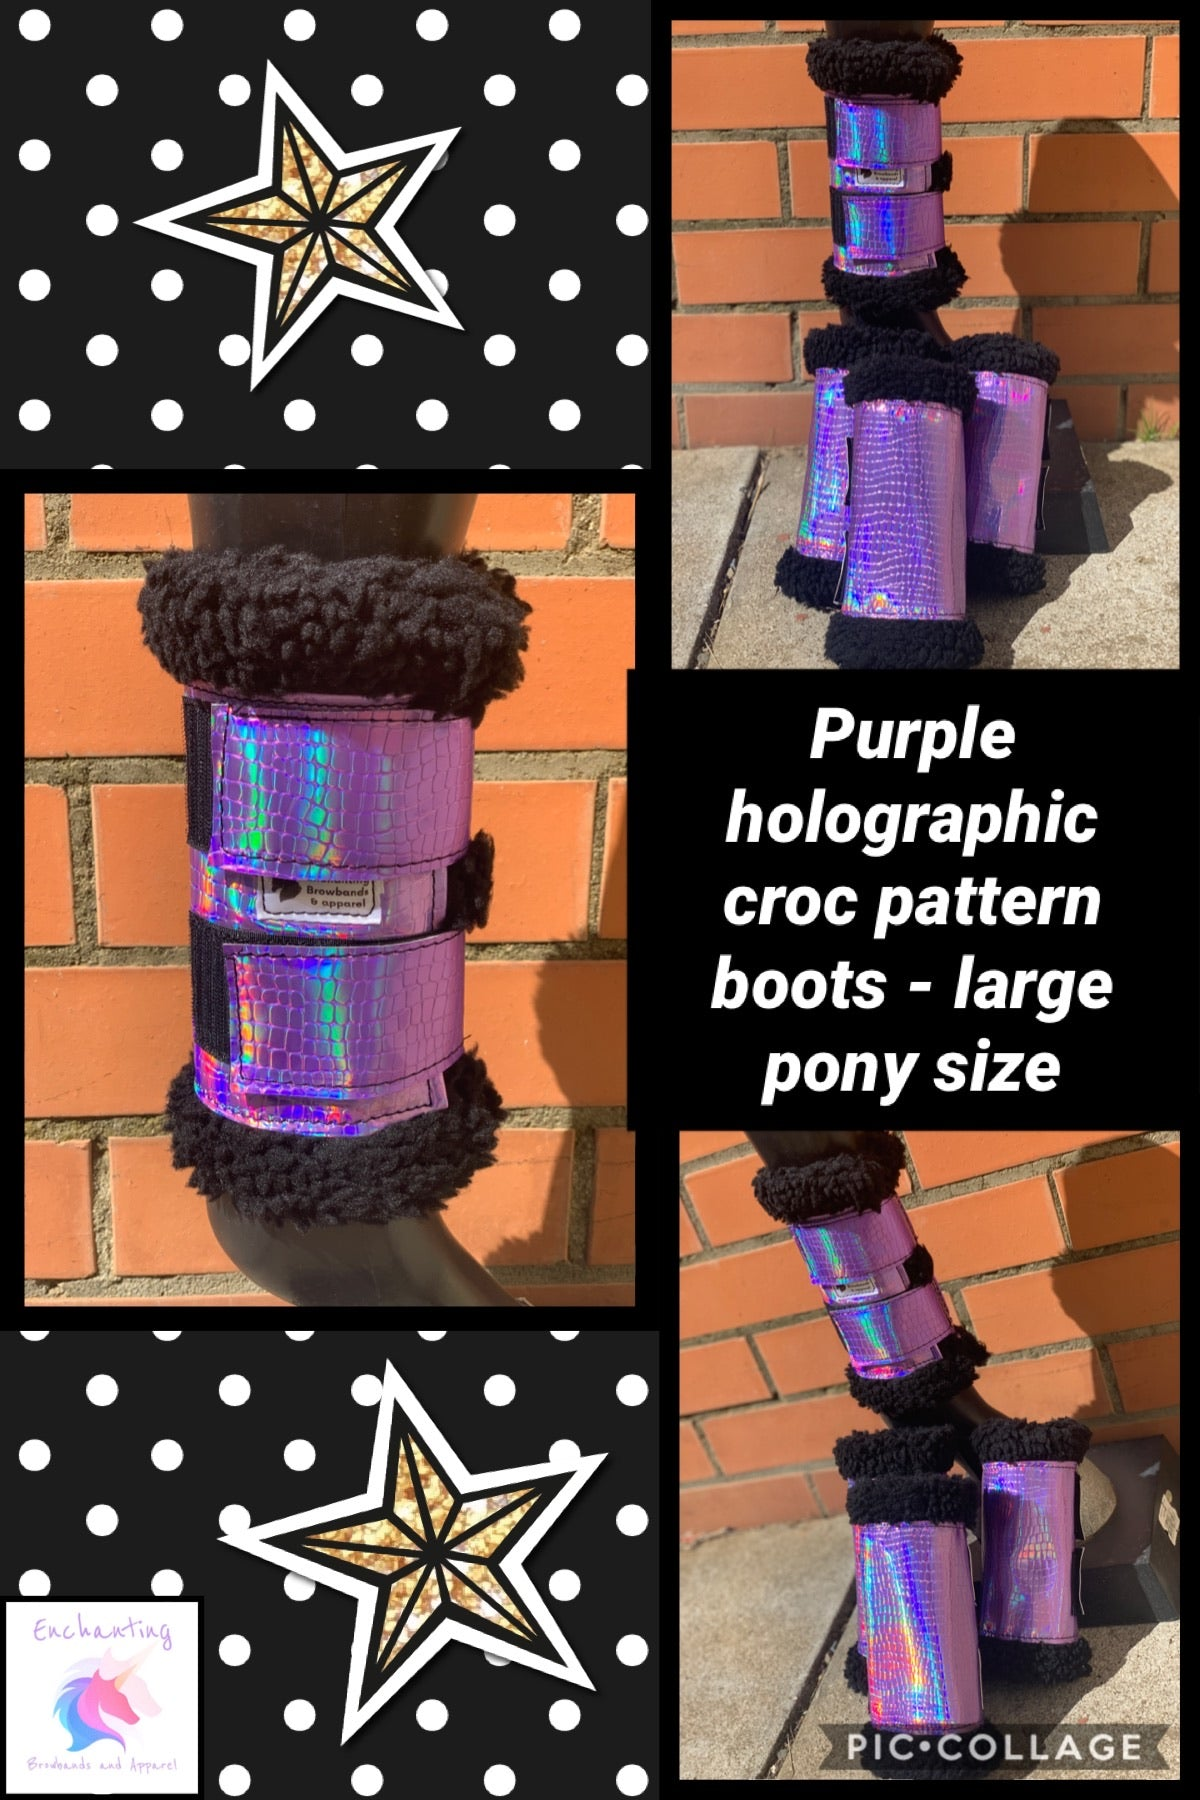 Purple holographic croc pattern boots